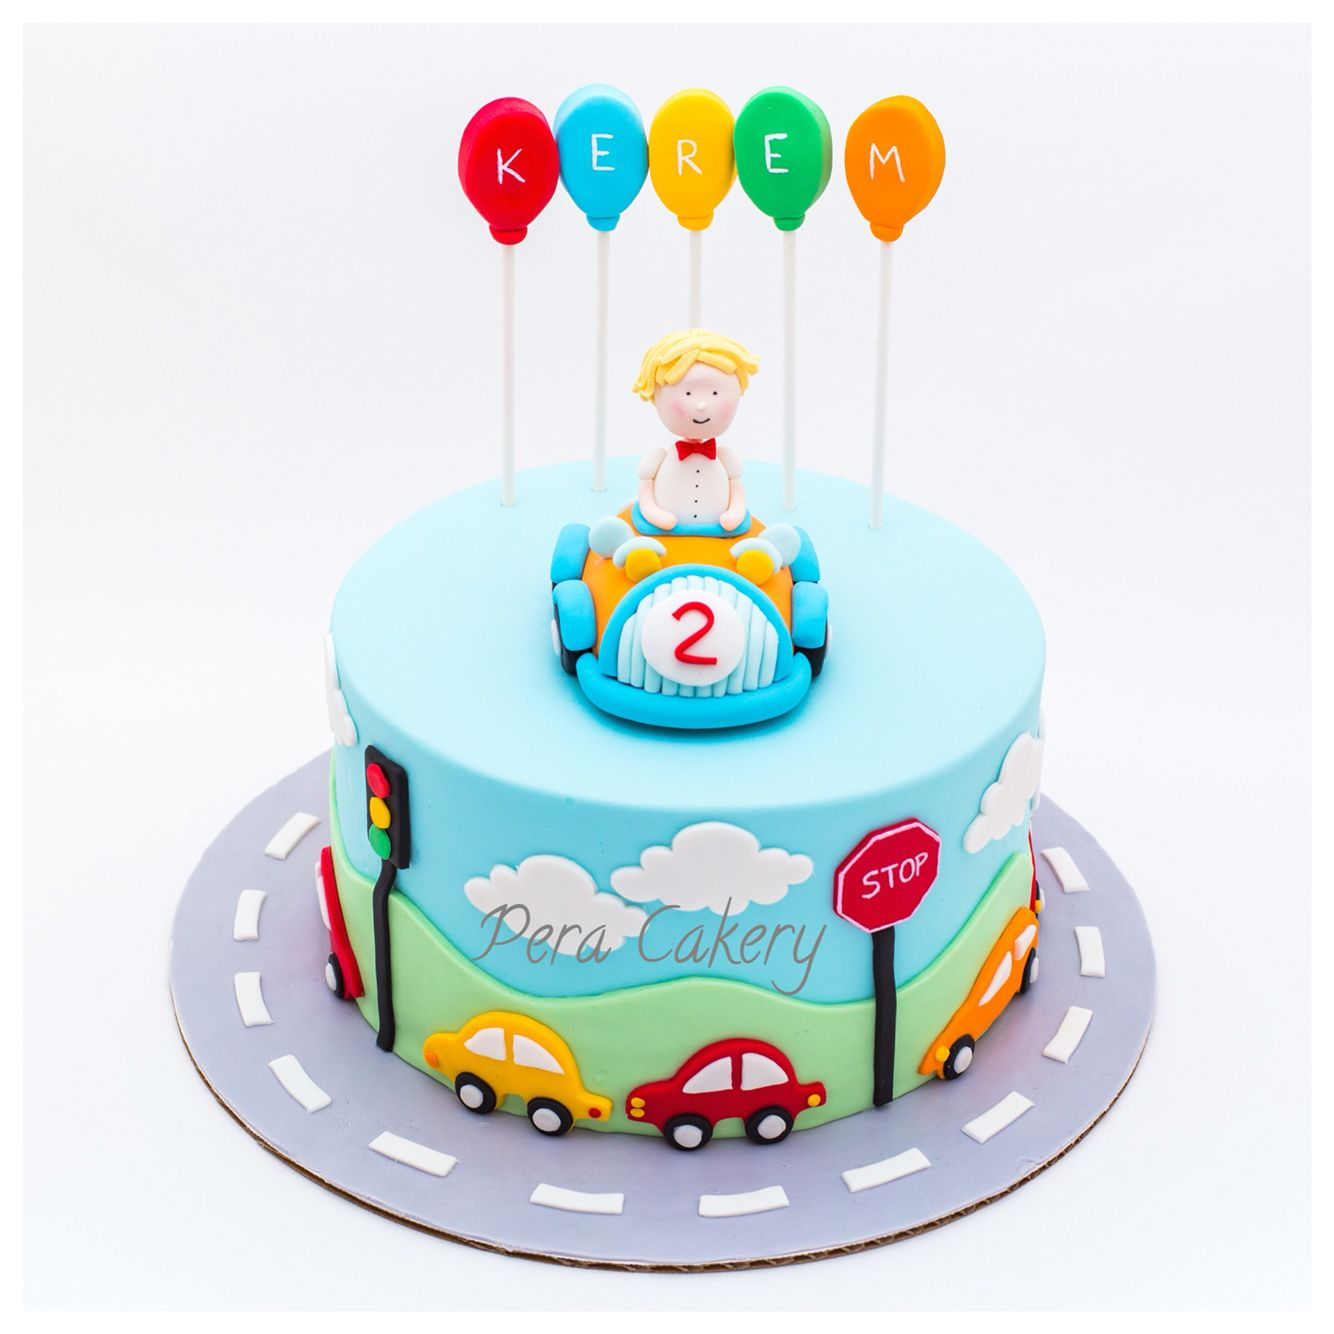 Bday Cake Images For Baby Boy : Car cake for a 2 year old boy Pera Cakery Cakes ...